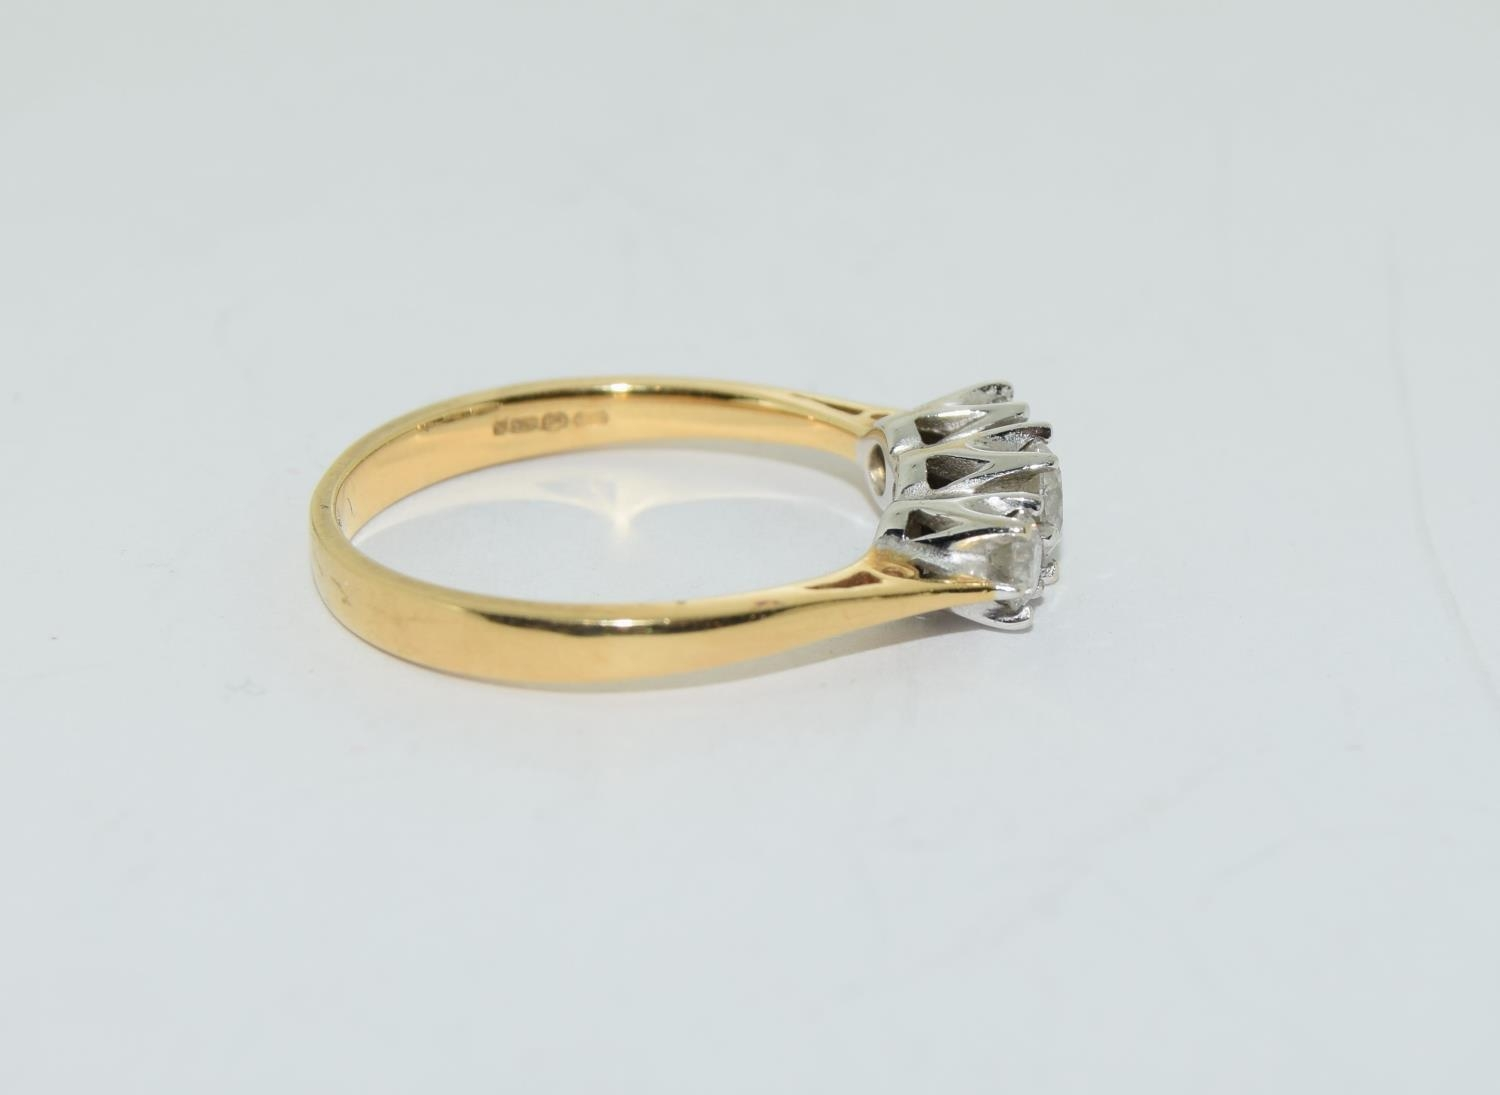 Diamond 3 stone aprox 0.50 points 18ct gold ring size O. - Image 2 of 5